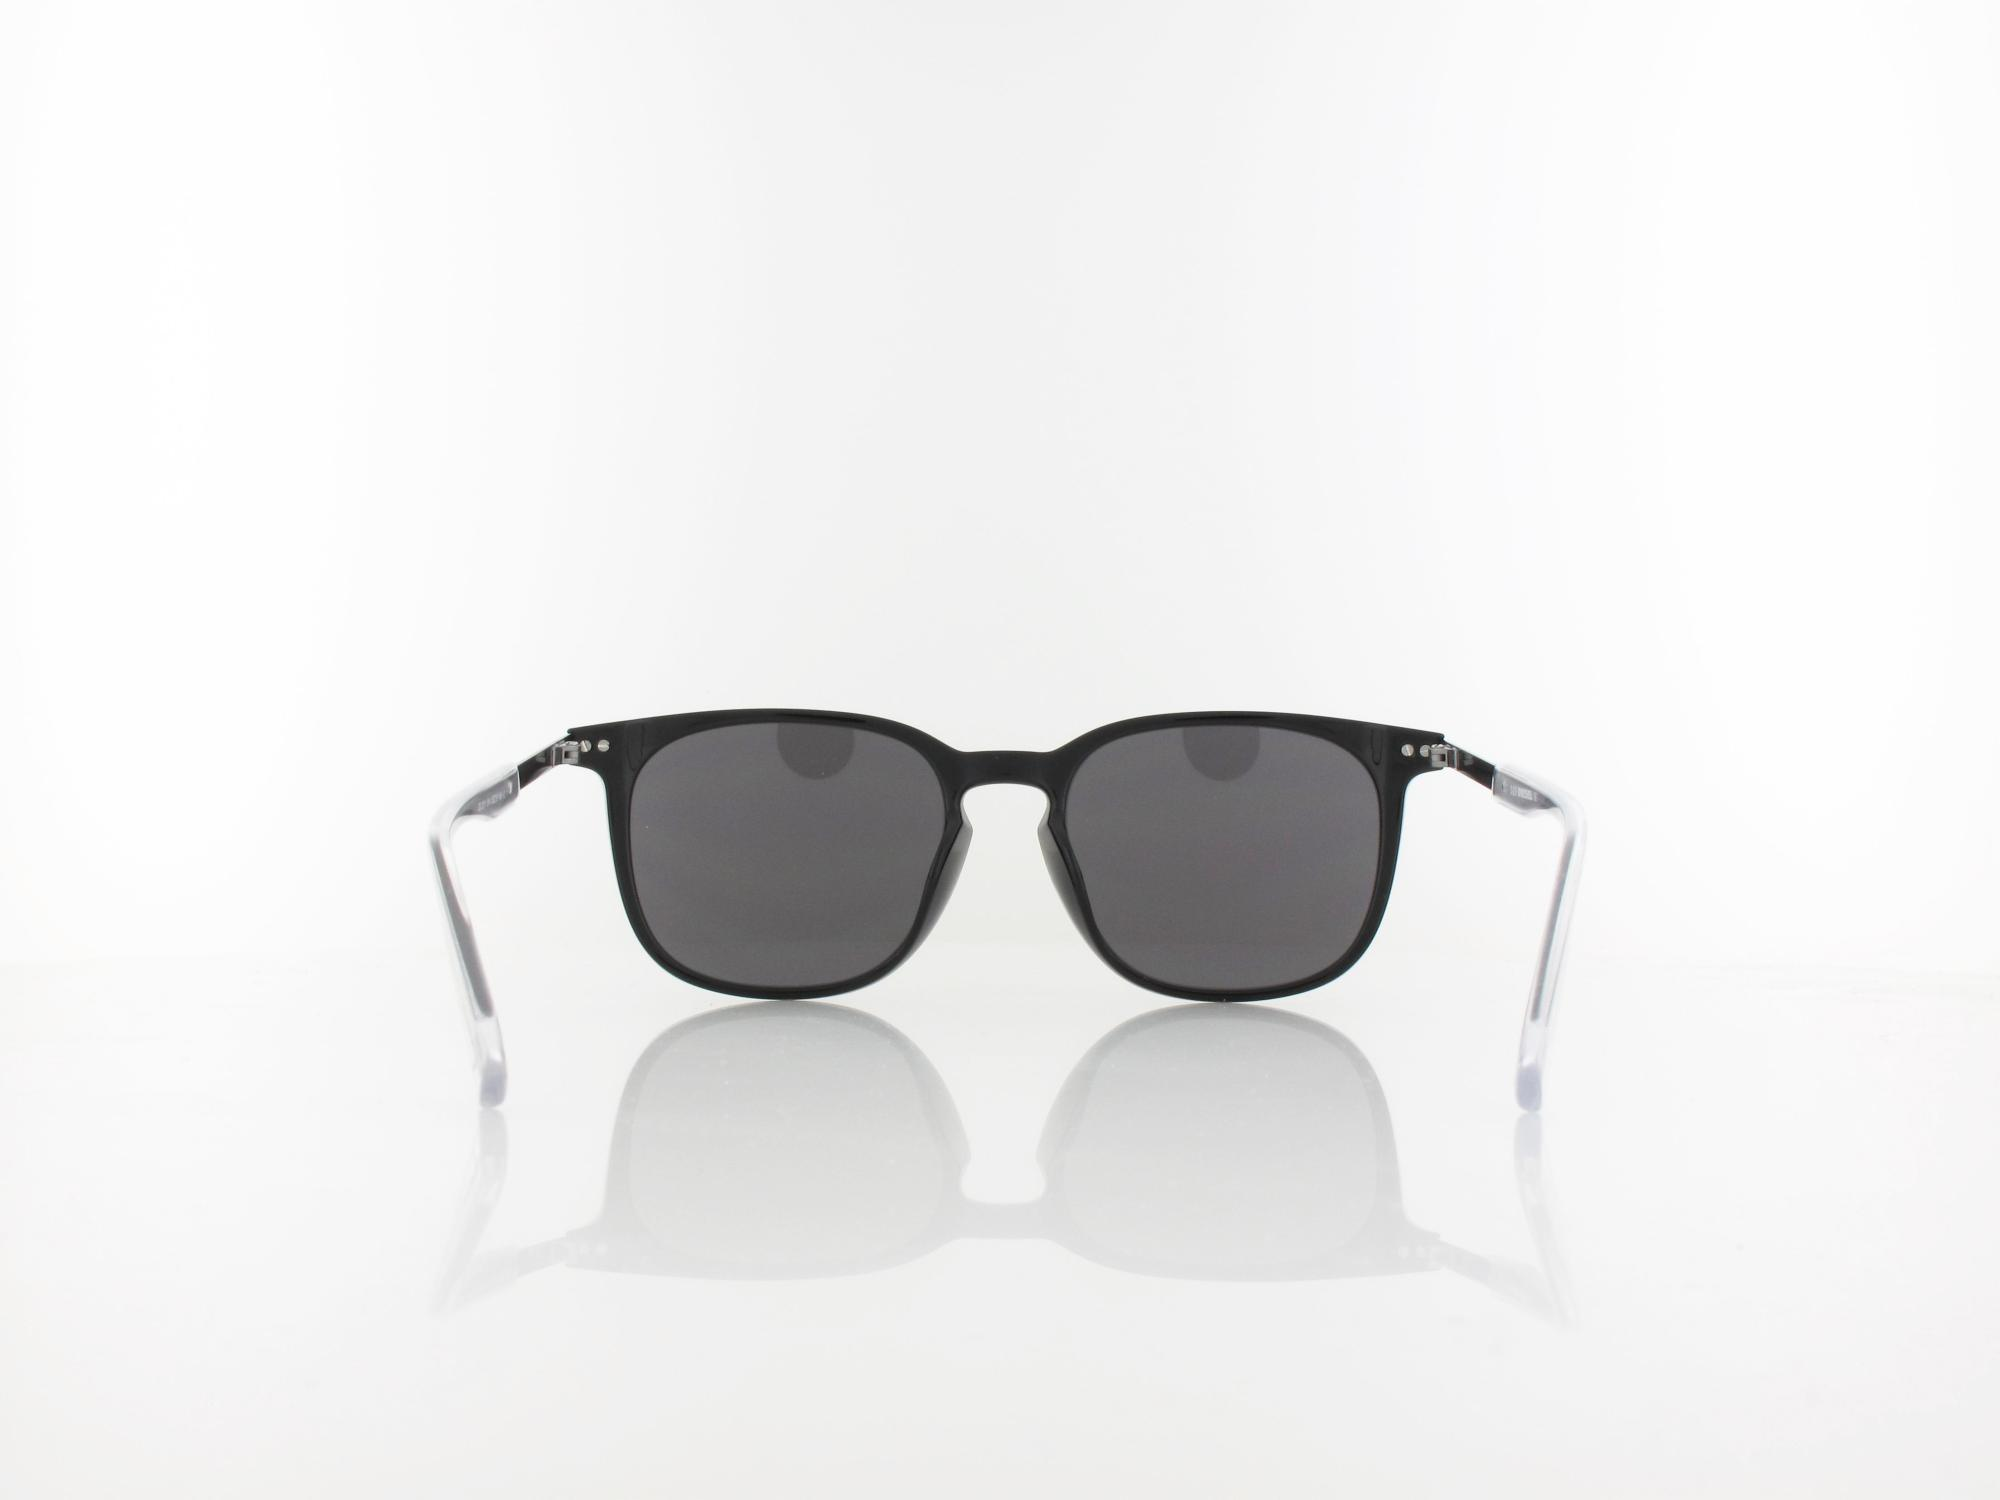 Diesel | DL0311/S 01A 53 | shiny black / grey